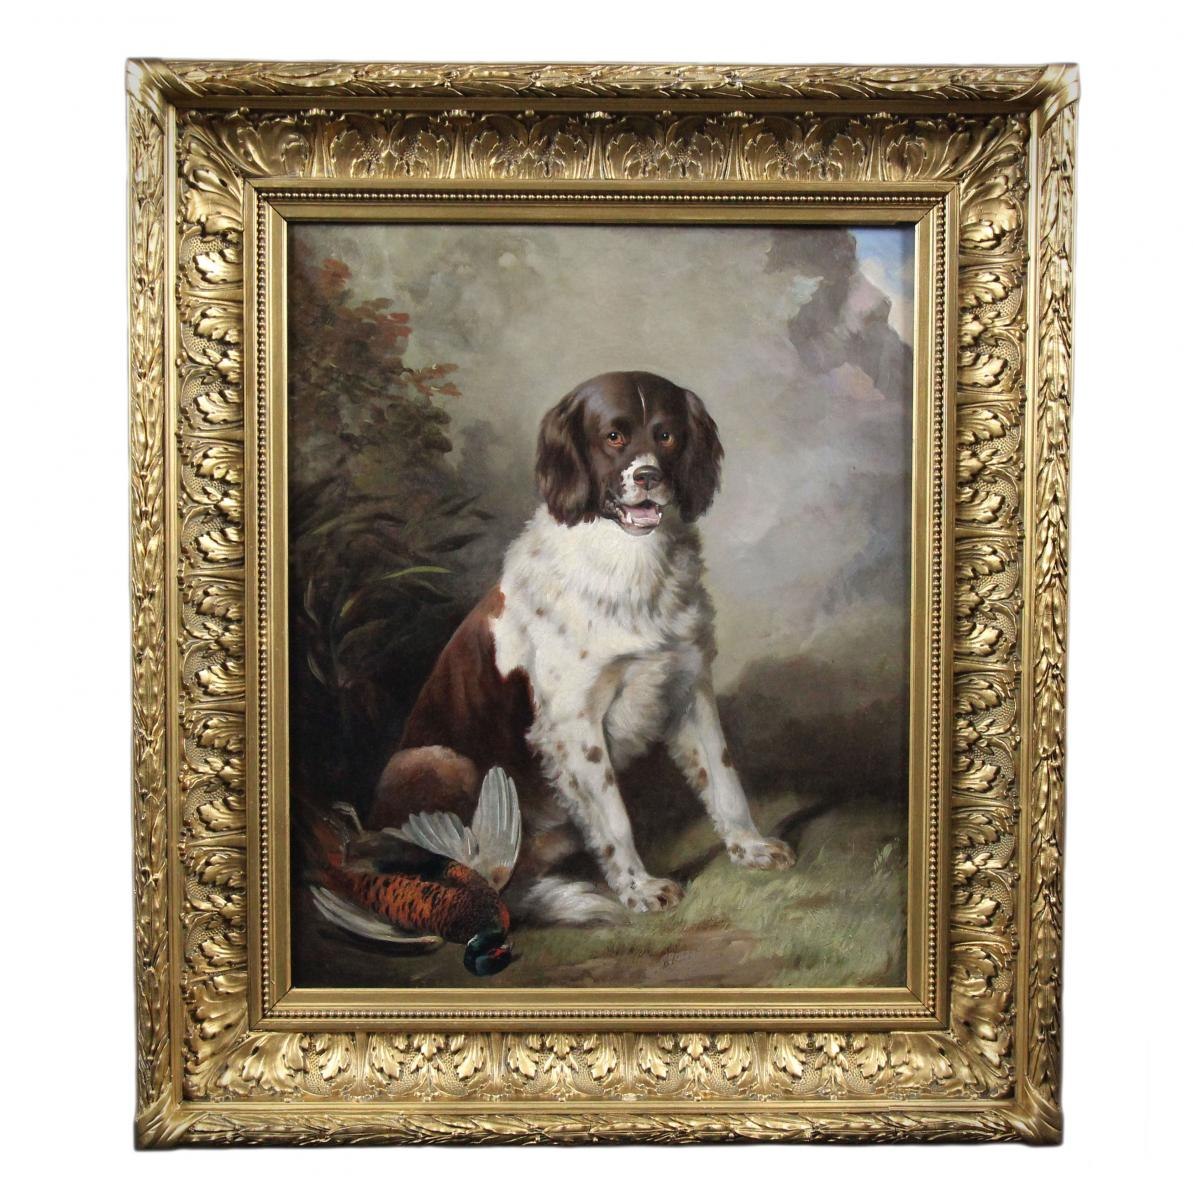 695896f32f9d Oil Painting On Canvas Scene Hunting Portrait Of Nineteenth Century Dog flag